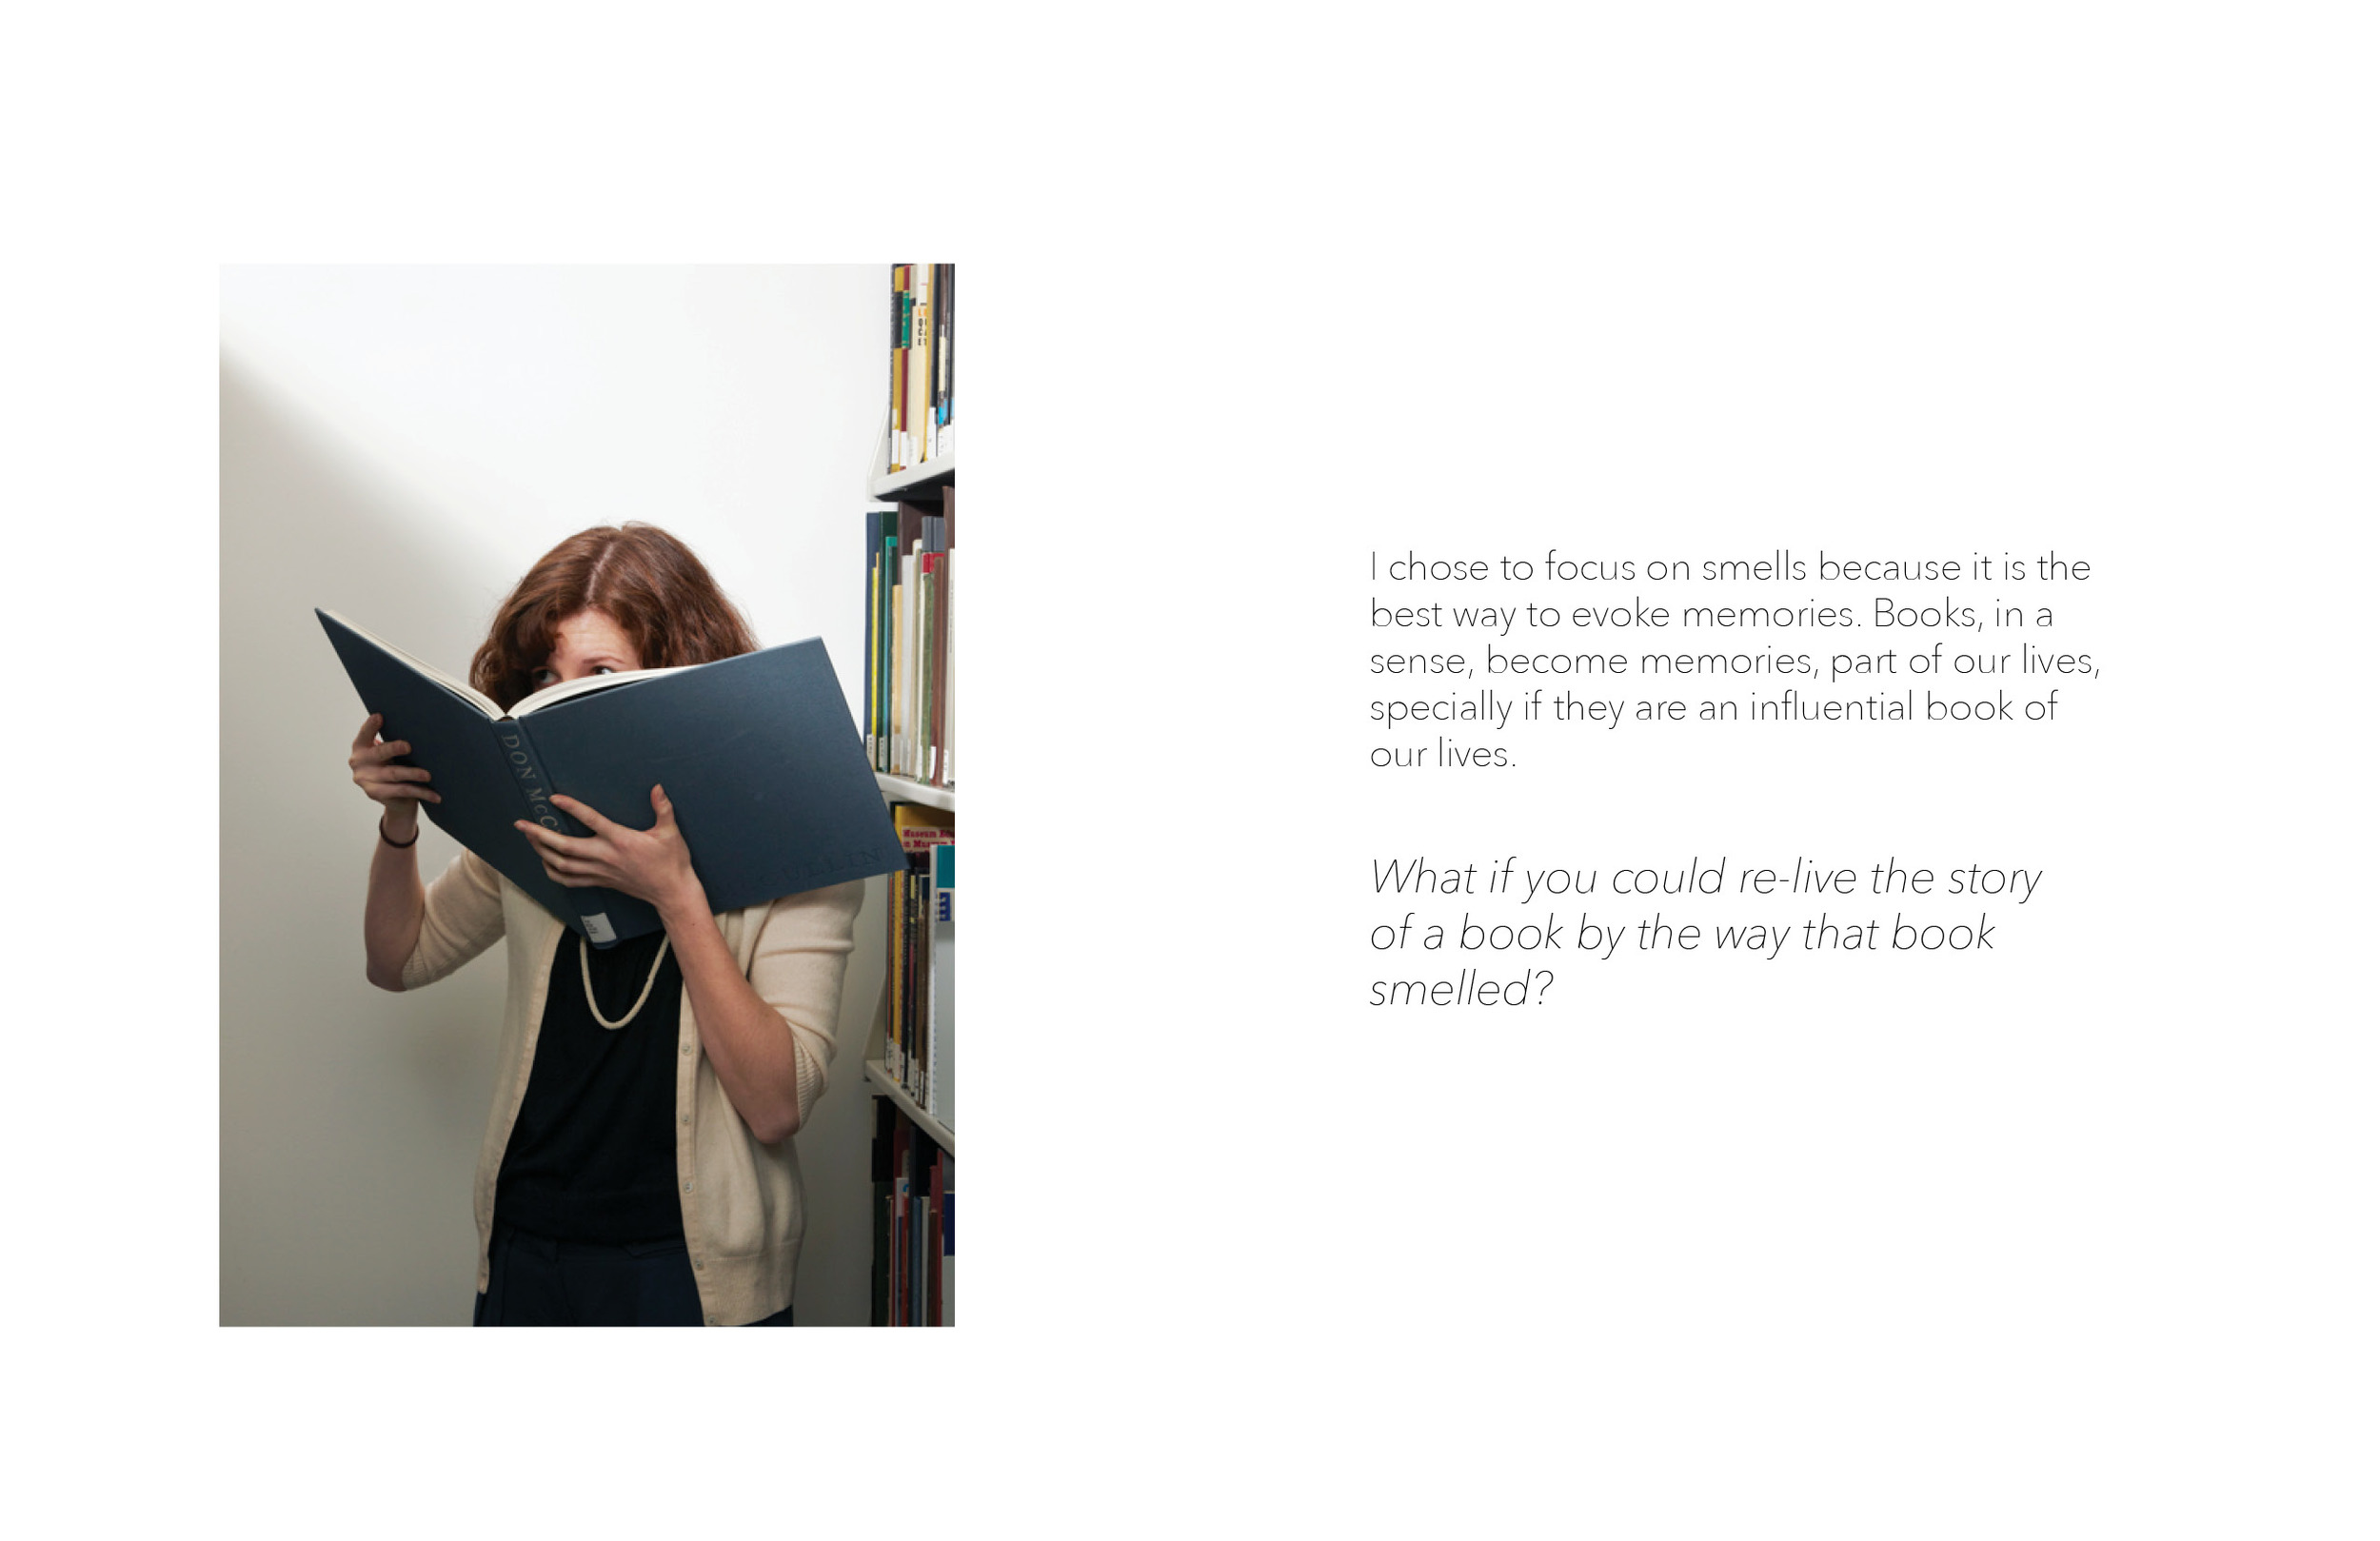 Girl smelling book page.jpg